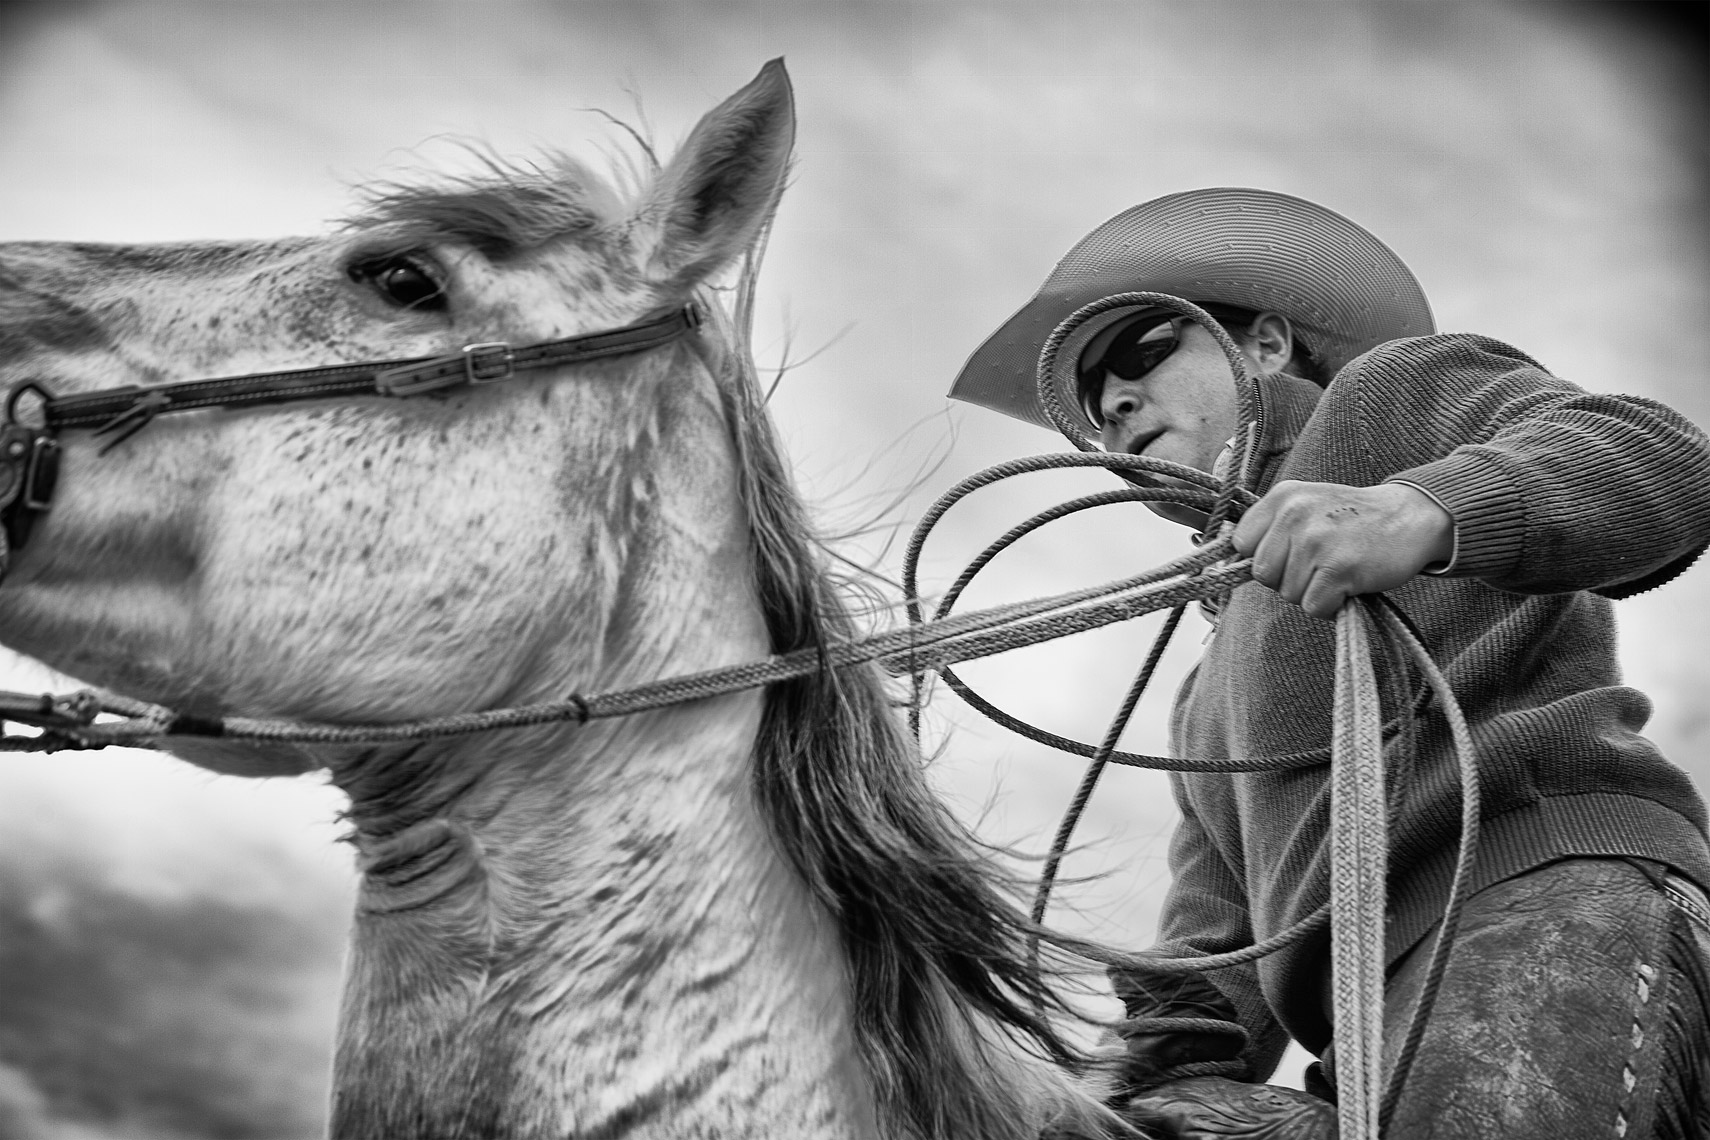 Cowboy Cattle Branding, Wilsal Montana by Dave White Phtographer 3